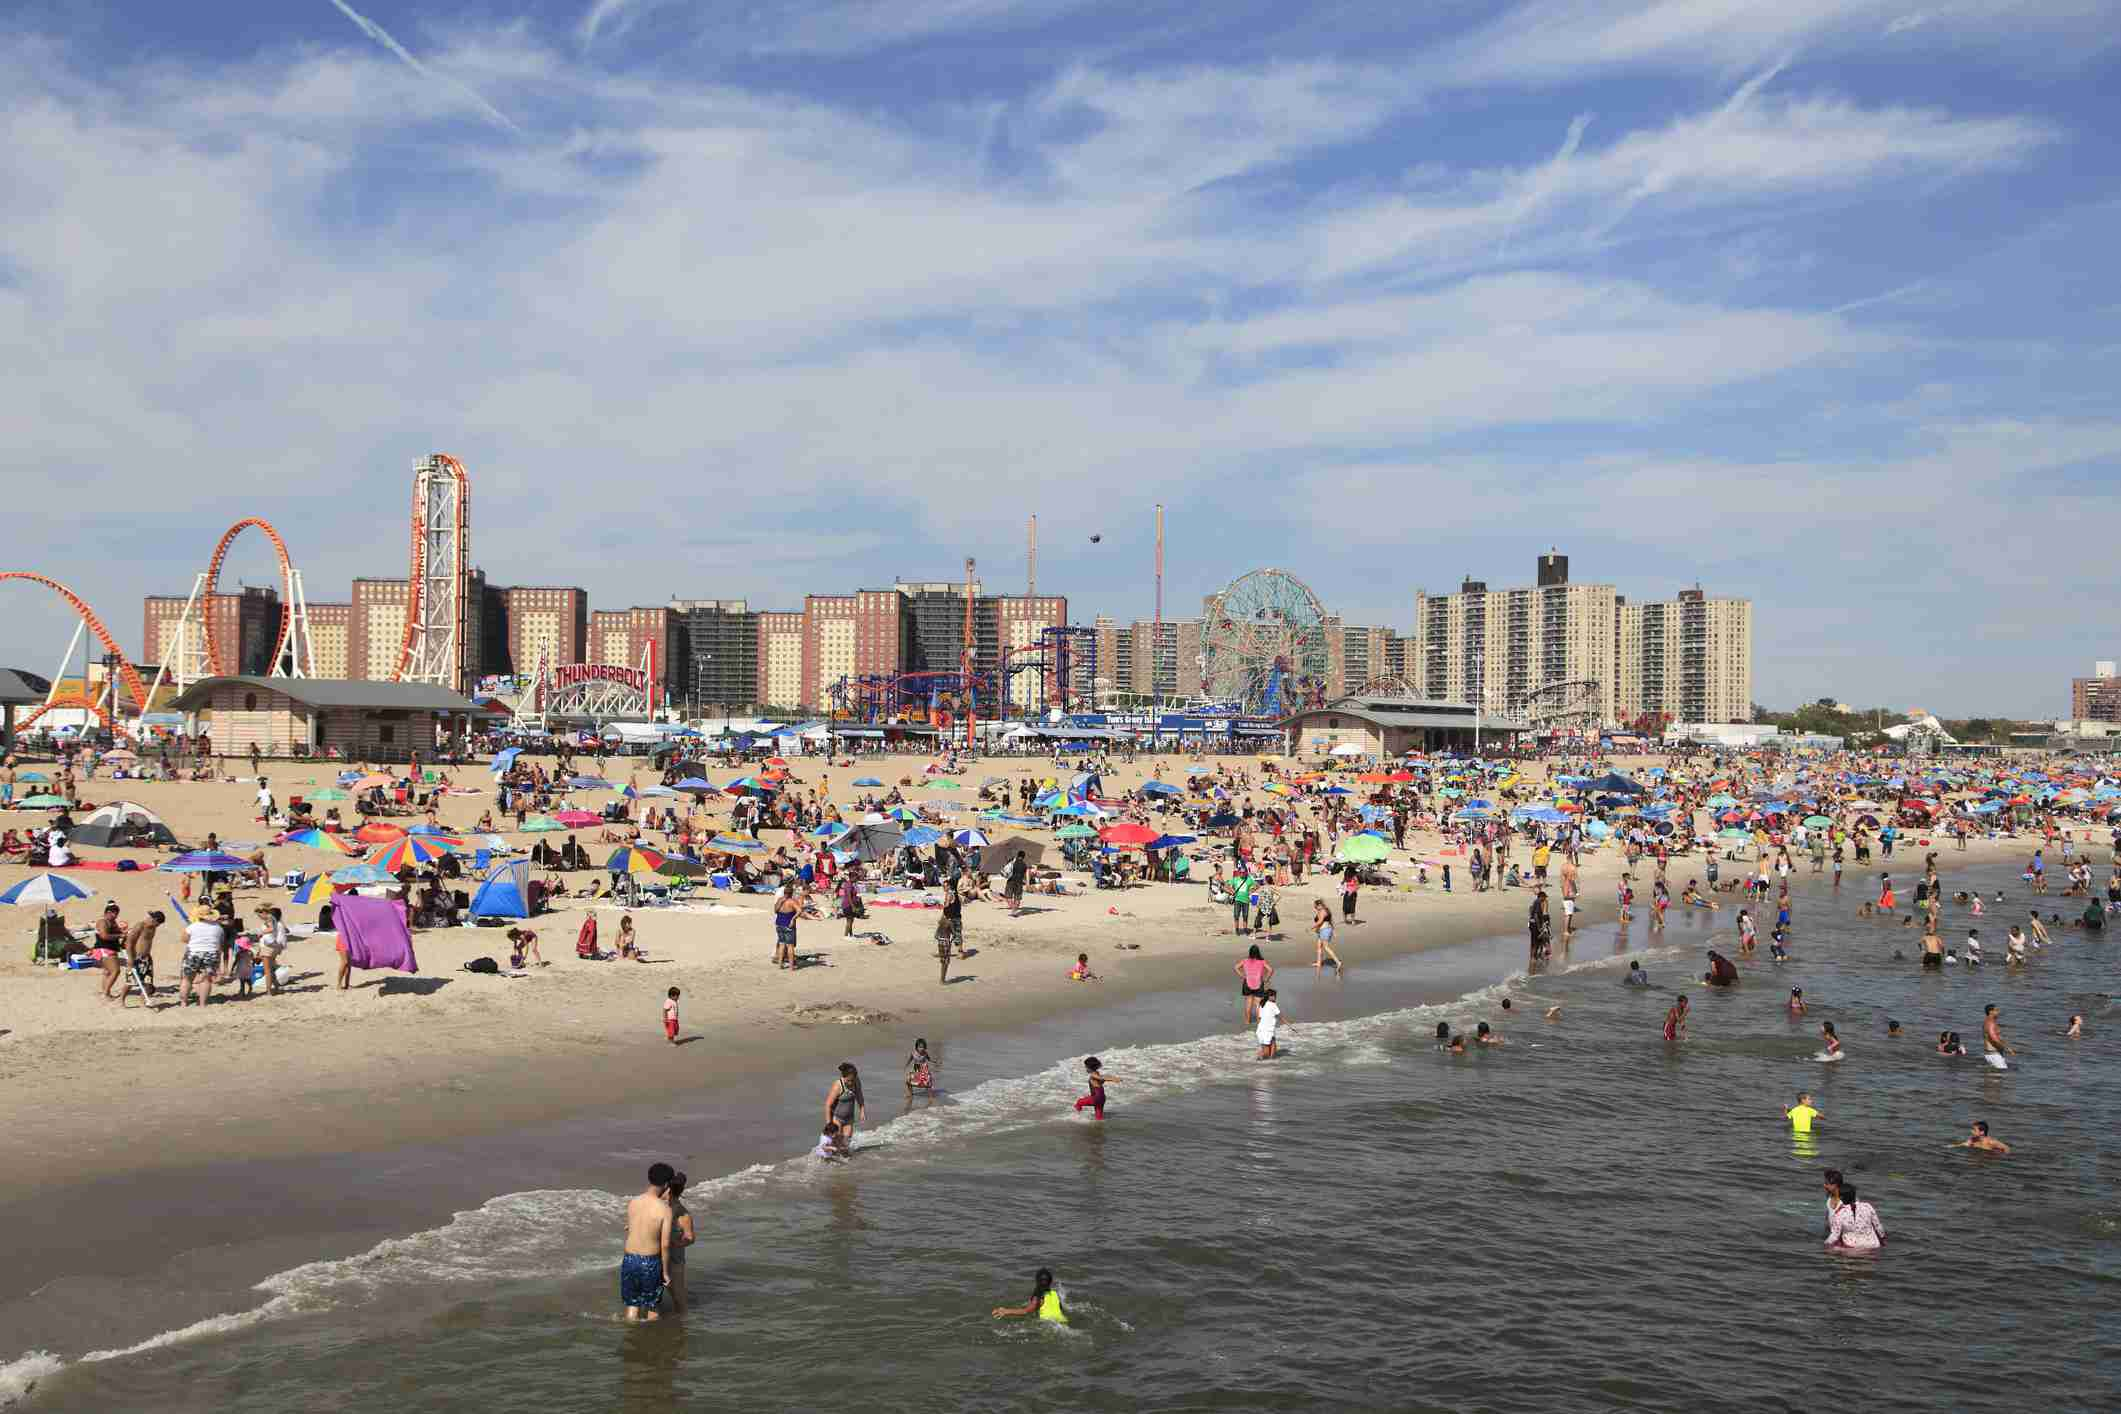 Beach filled with people in Coney Island